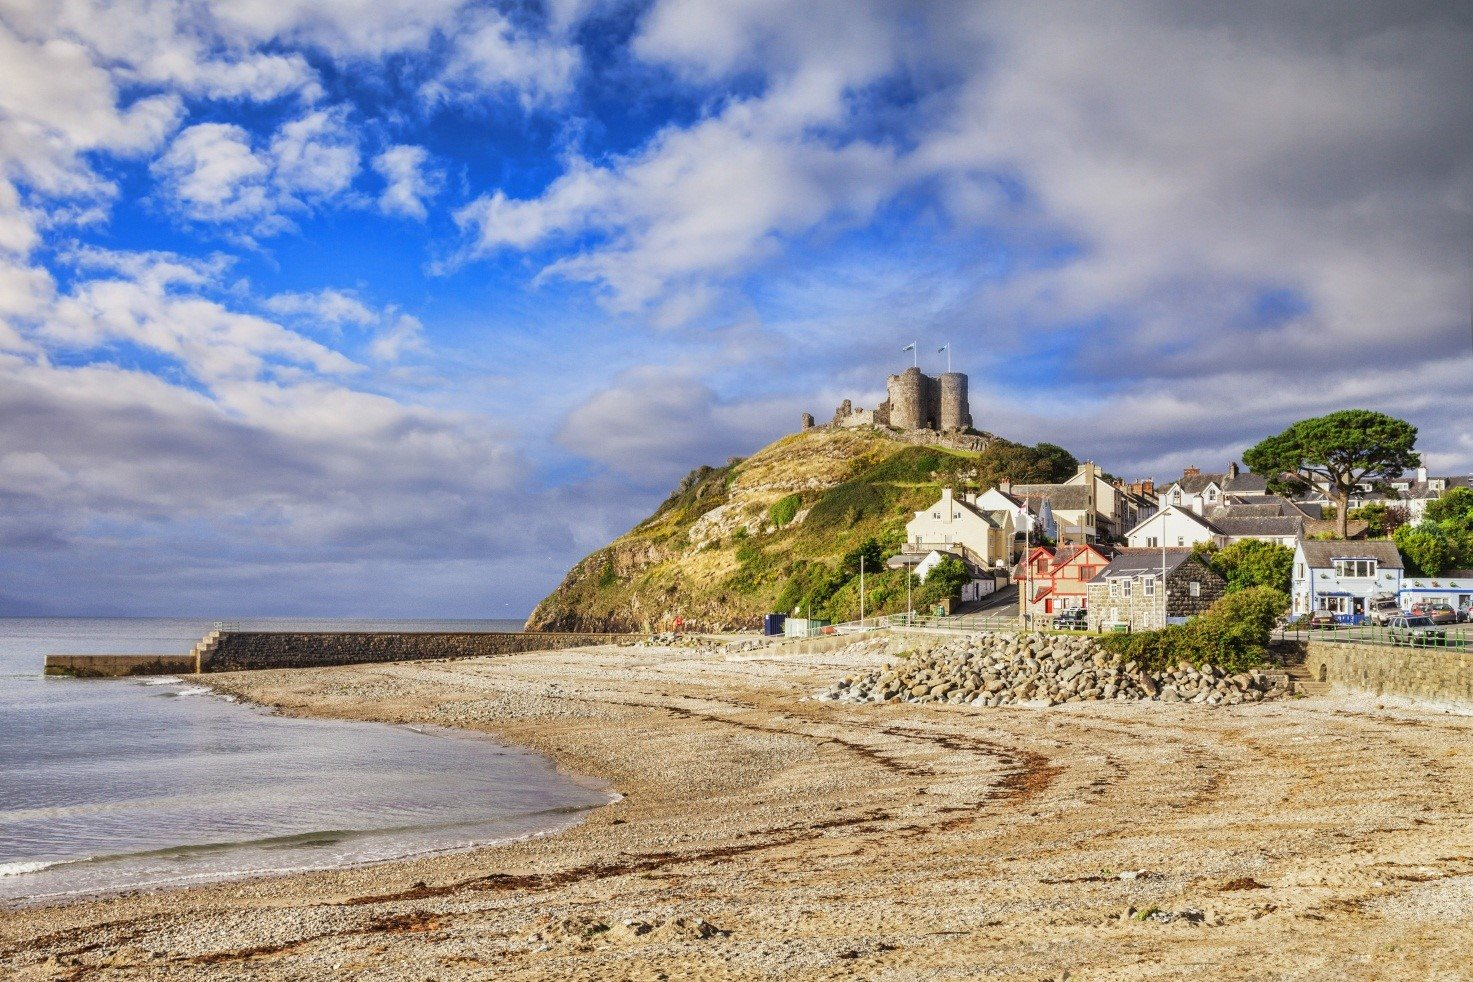 View of the coastline in Criccieth, Wales